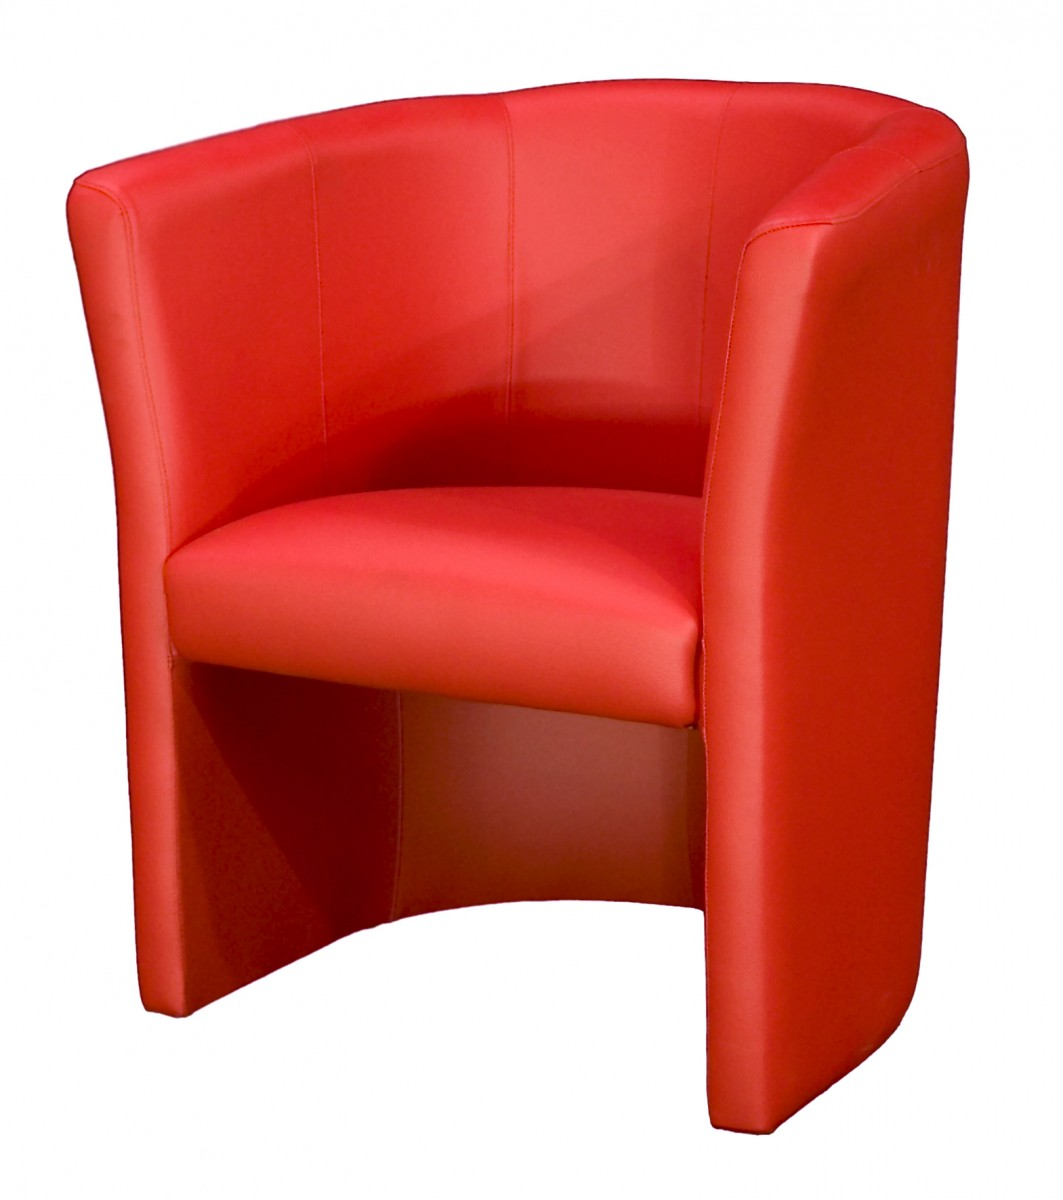 fauteuil rouge pas cher stunning fauteuil rouge pas cher with fauteuil rouge pas cher great. Black Bedroom Furniture Sets. Home Design Ideas